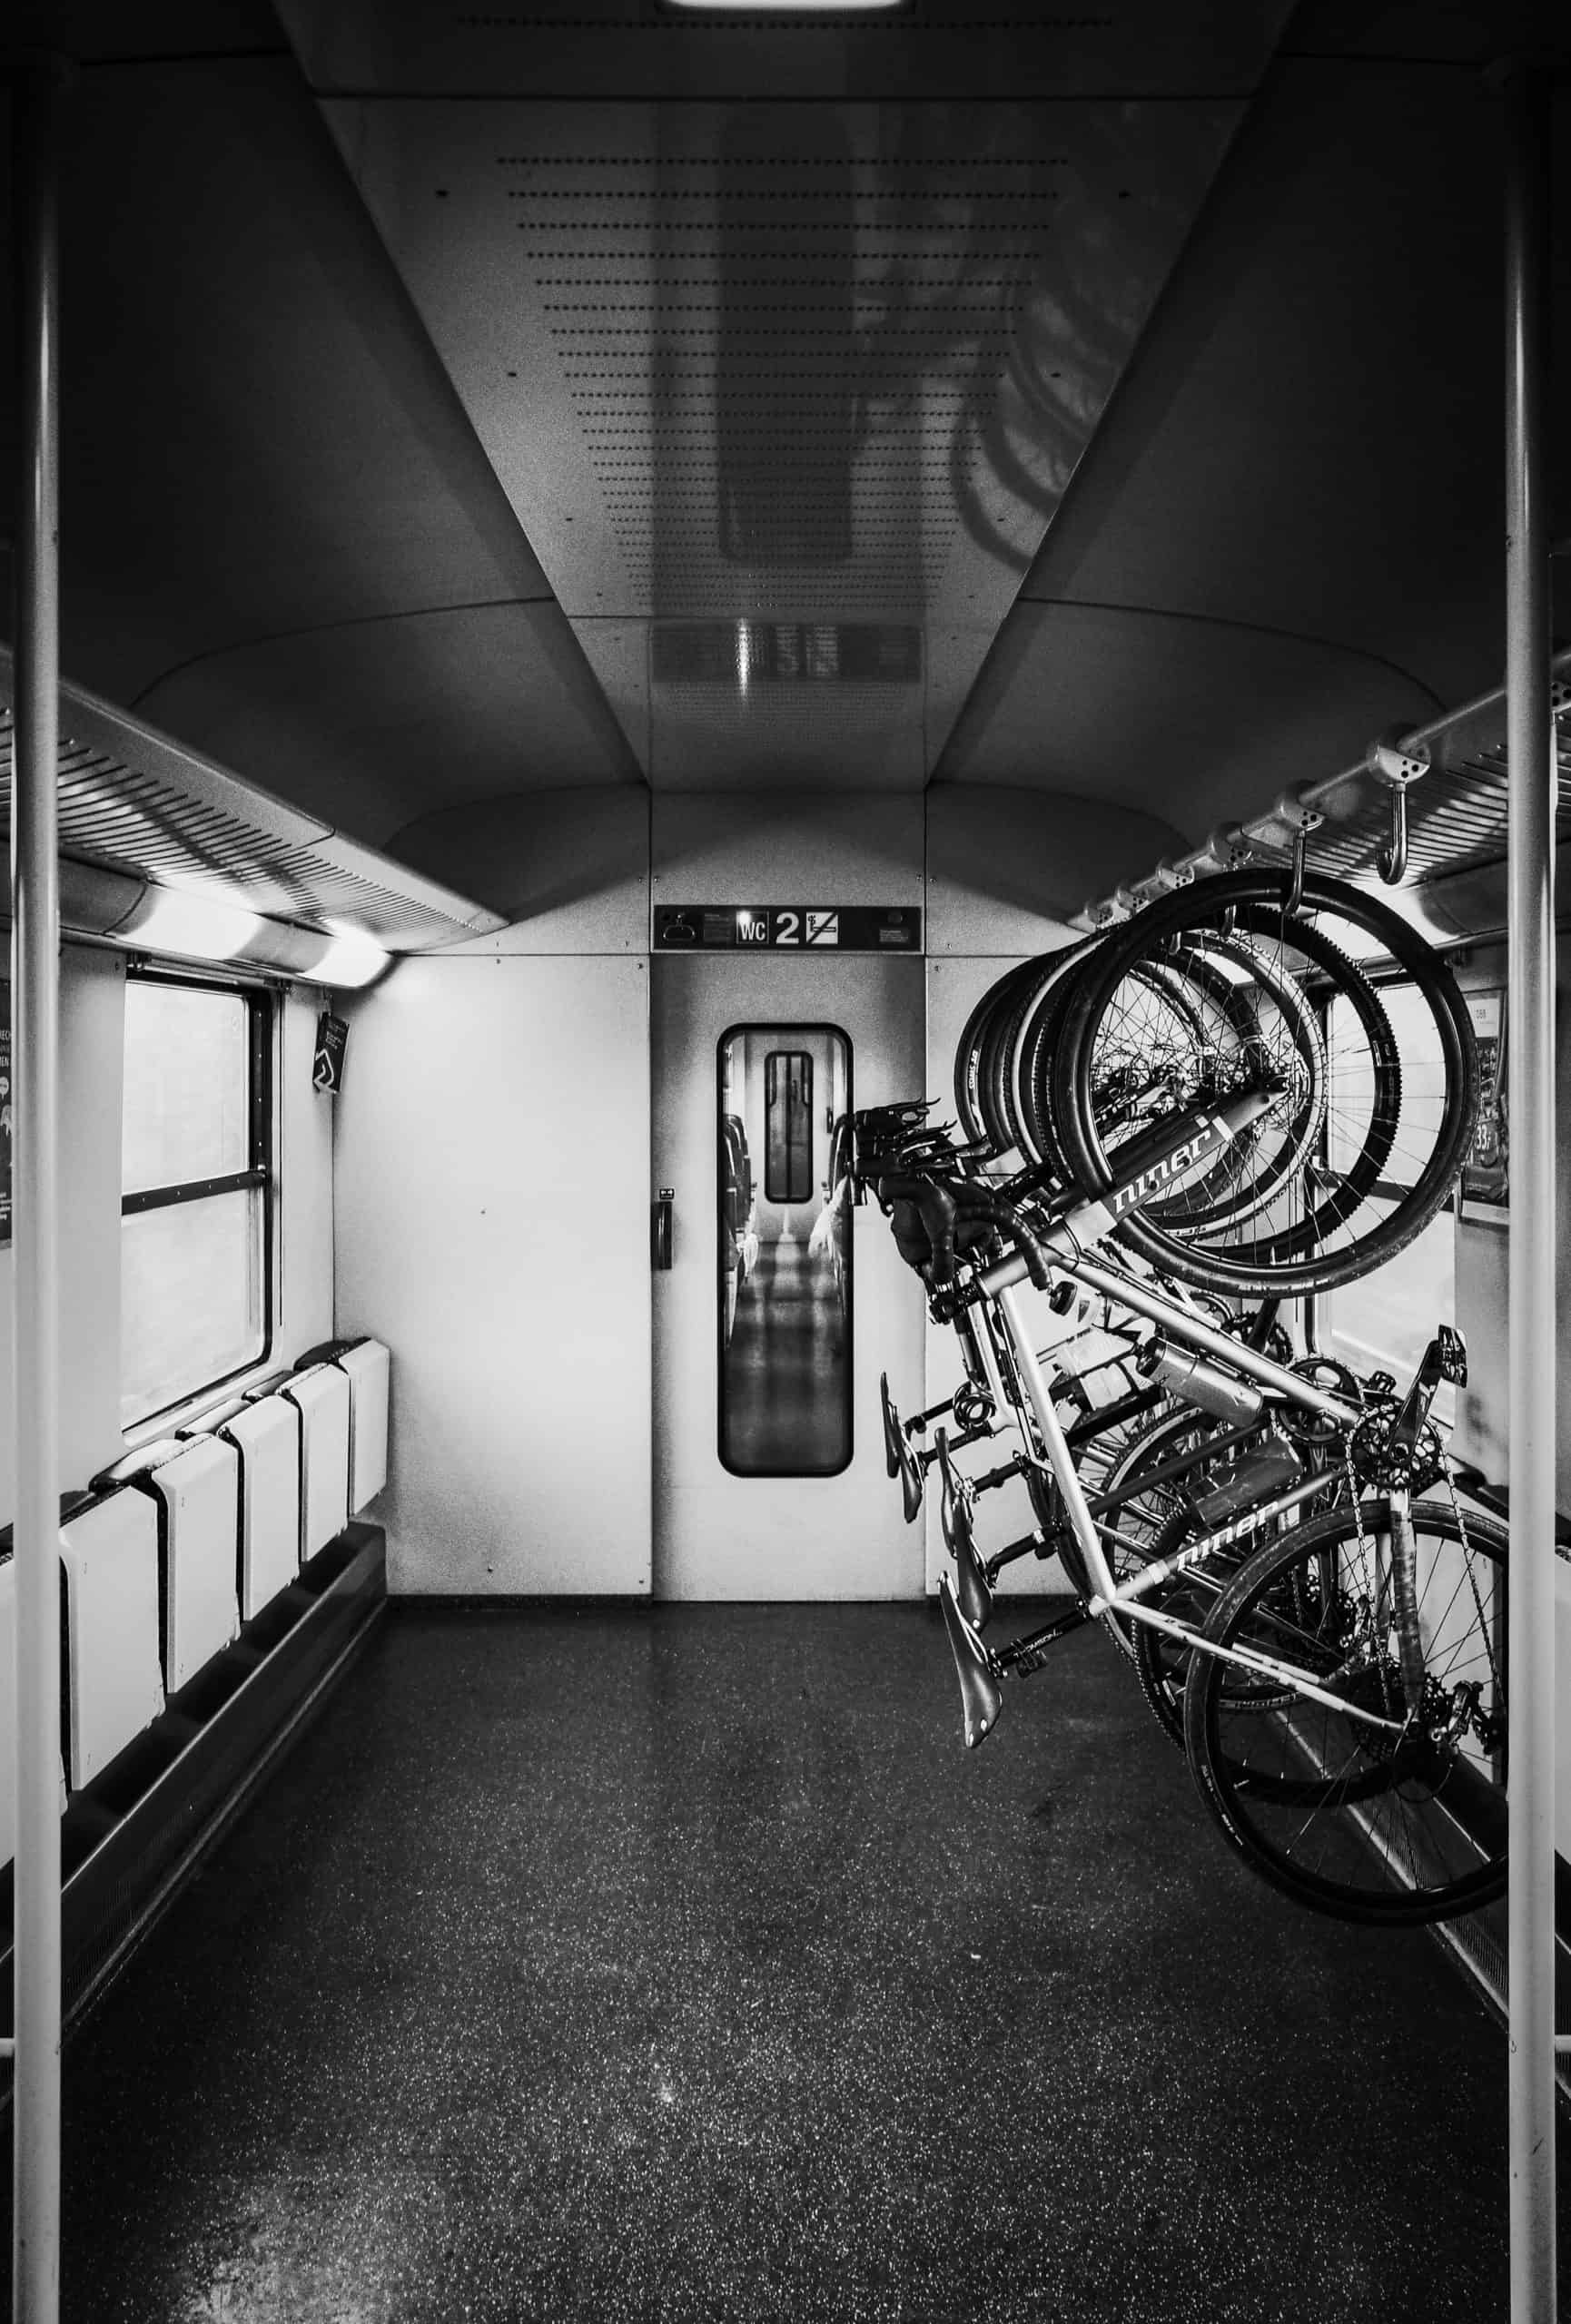 Factors Of The Best Bike Storage Systems